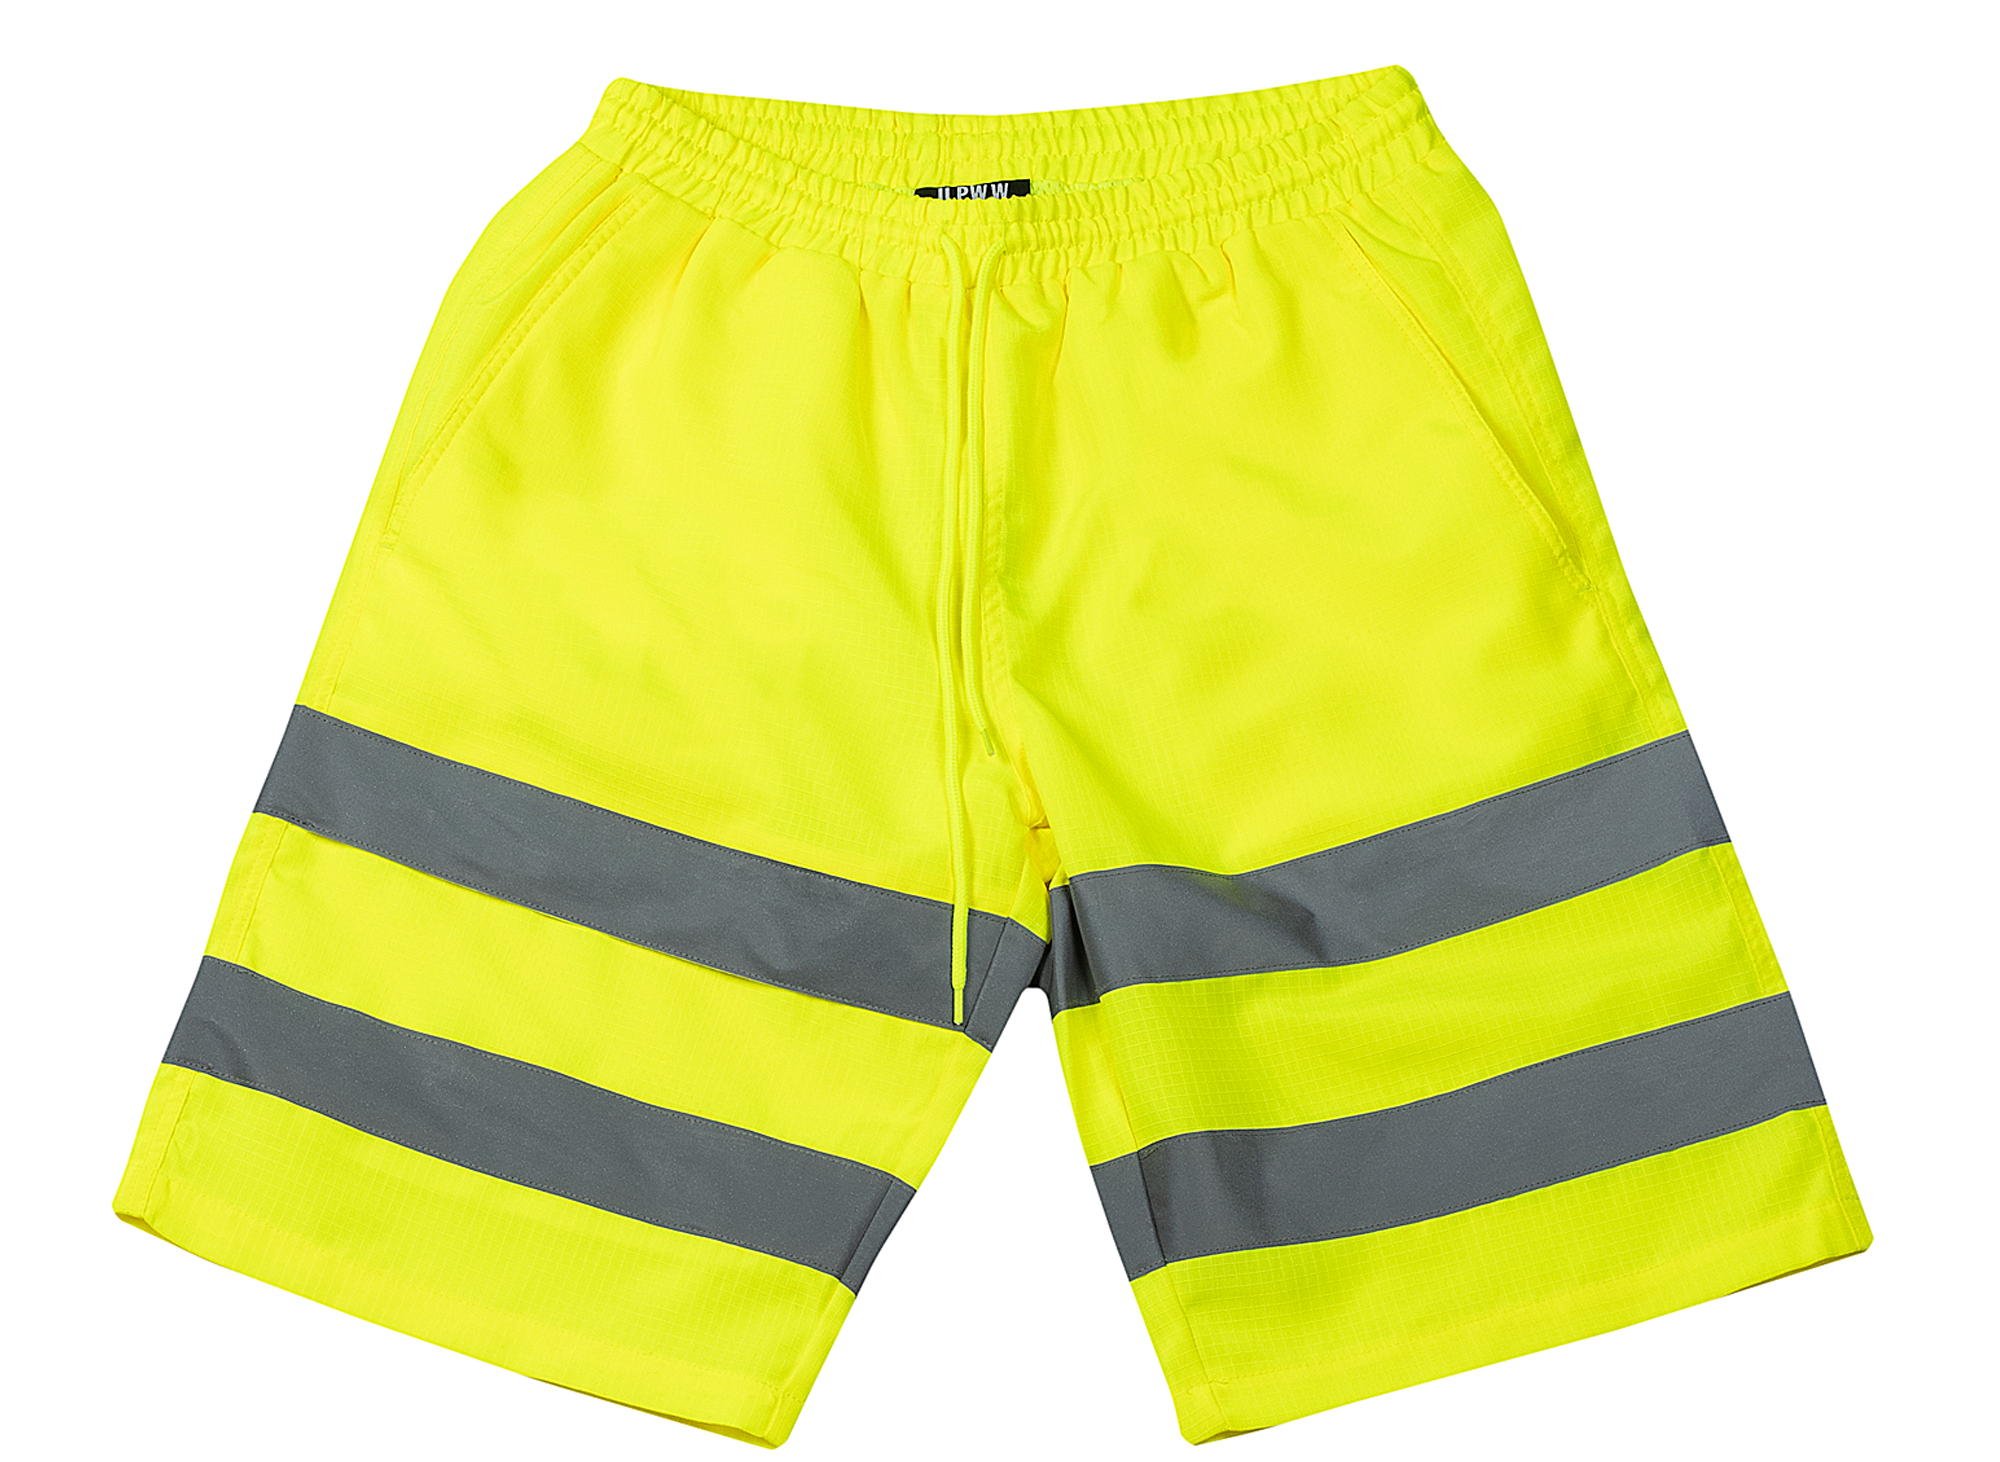 U.P.W.W. Safety Shorts in Yellow